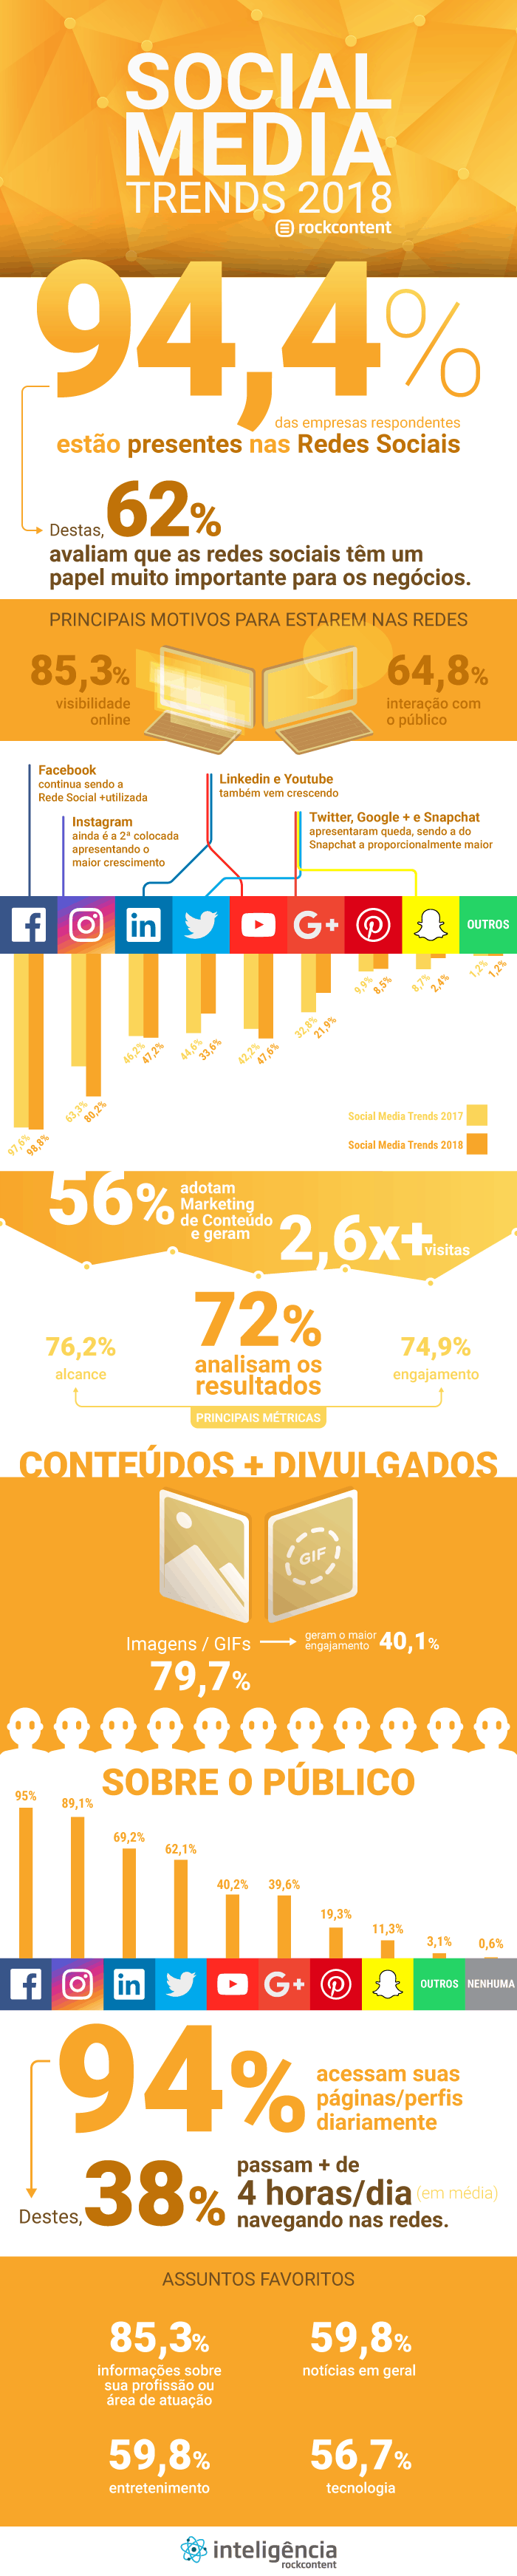 Infográfico da Social Media Trends 2018